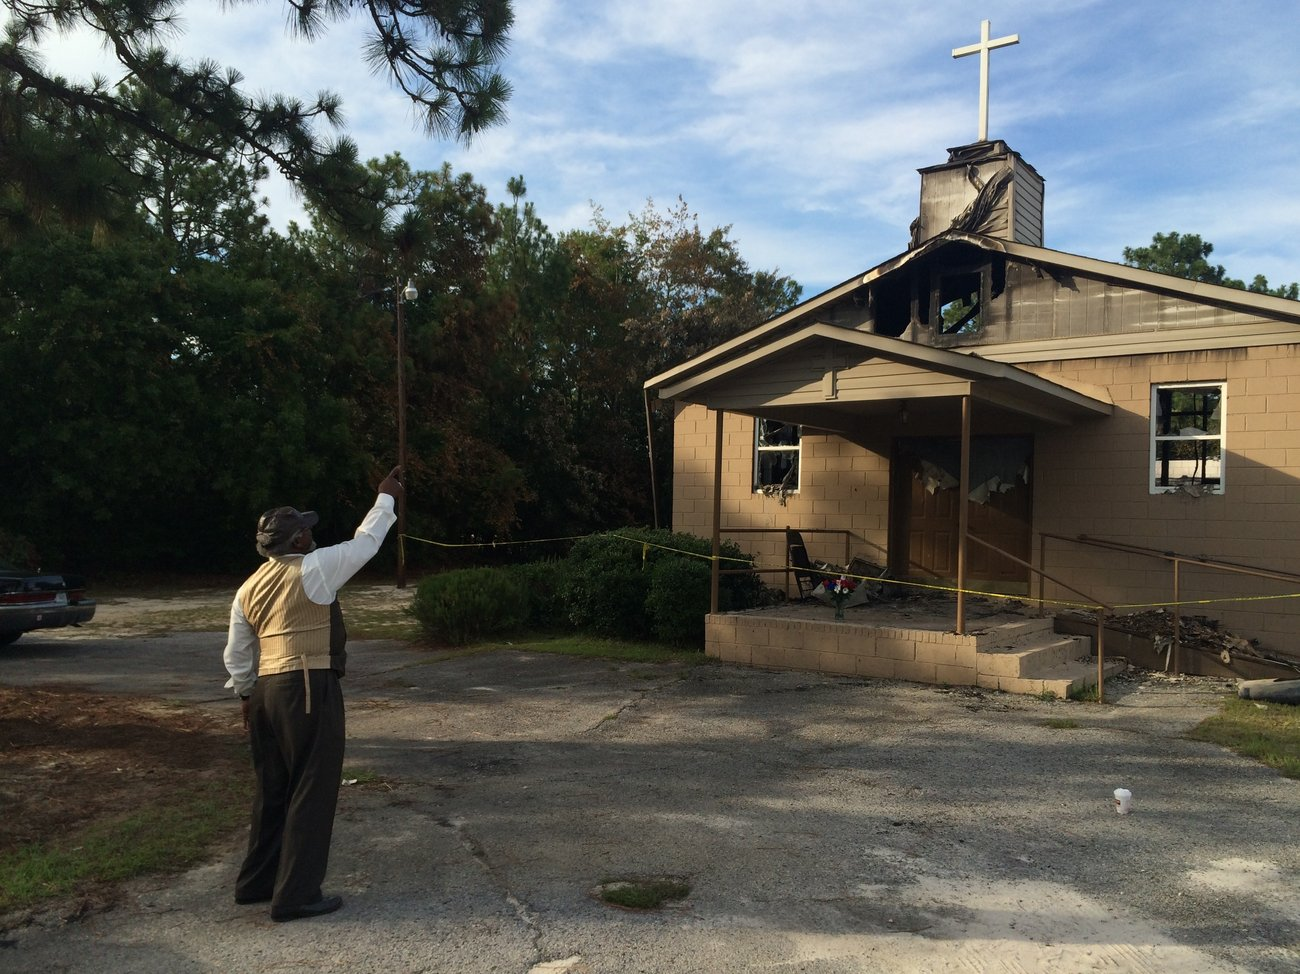 Pastor Bobby Jones points to the cross on top of Glover Grove Baptist Church, where he has preached for more than 30 years. The steeple was one of the only parts of the church left standing.   Will Huntsberry/NPR